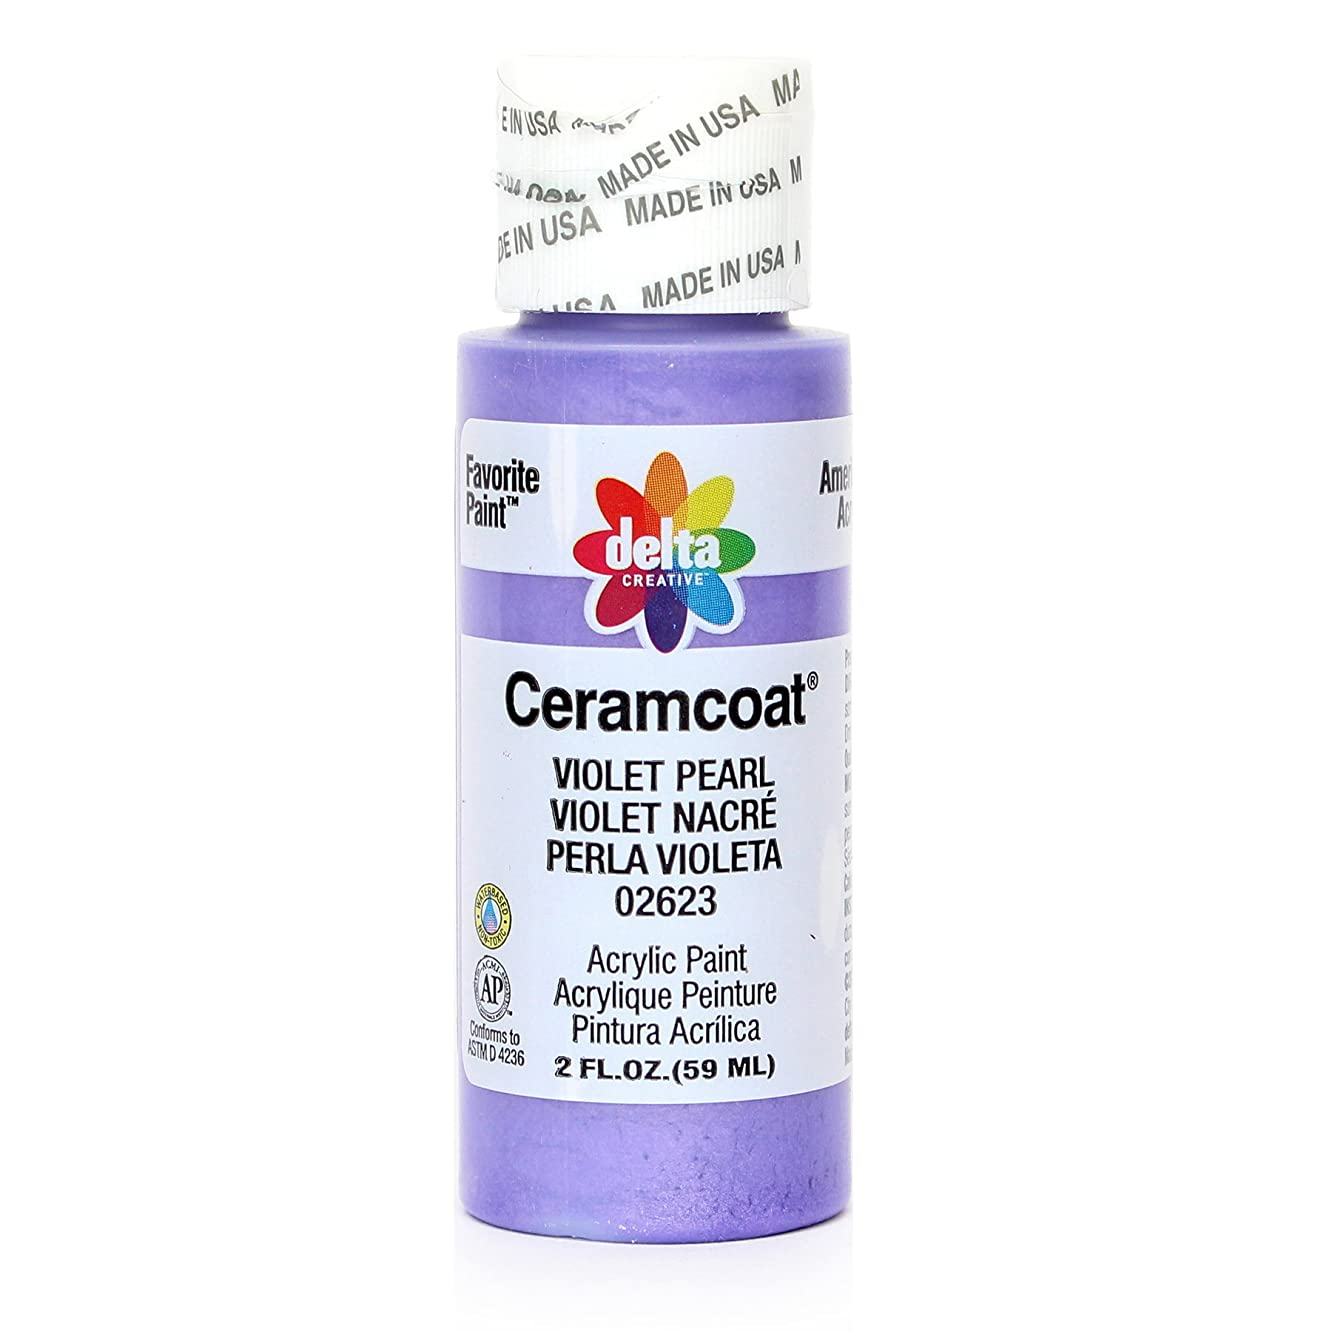 Delta Creative Ceramcoat Metallic and Pearl Acrylic Paint in Assorted Colors (2 oz), 2623, Violet Pearl